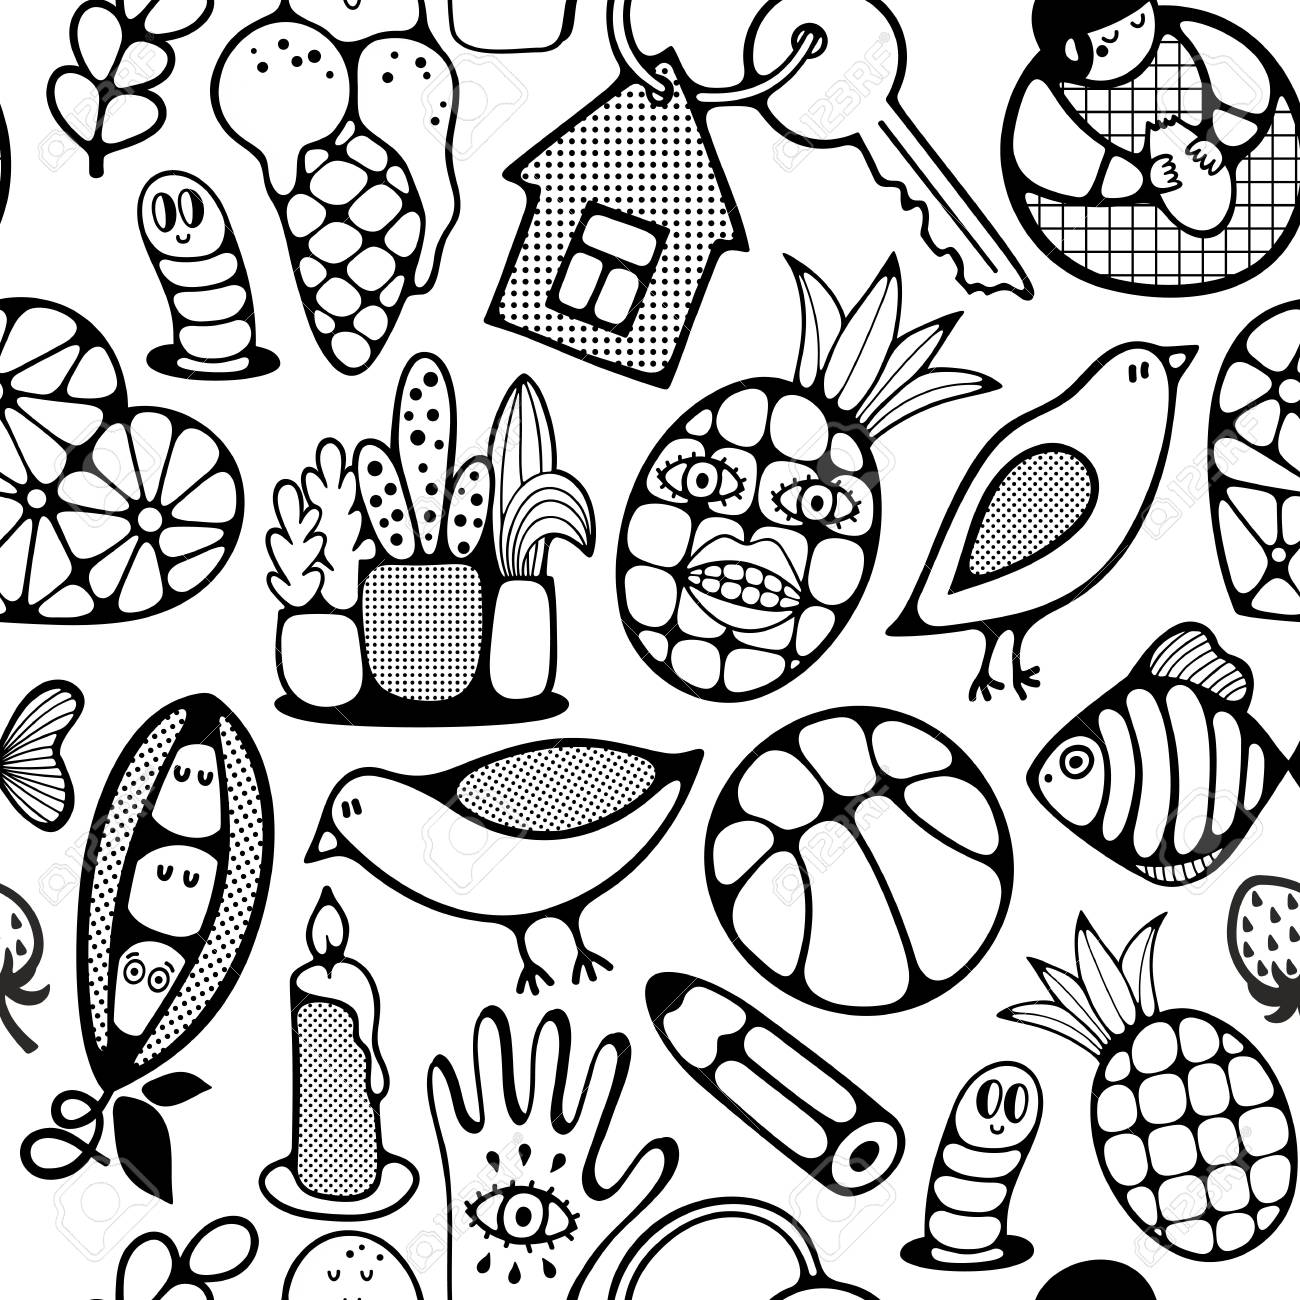 Top 25 Free Printable Wild Animals Coloring Pages Online | 1300x1300